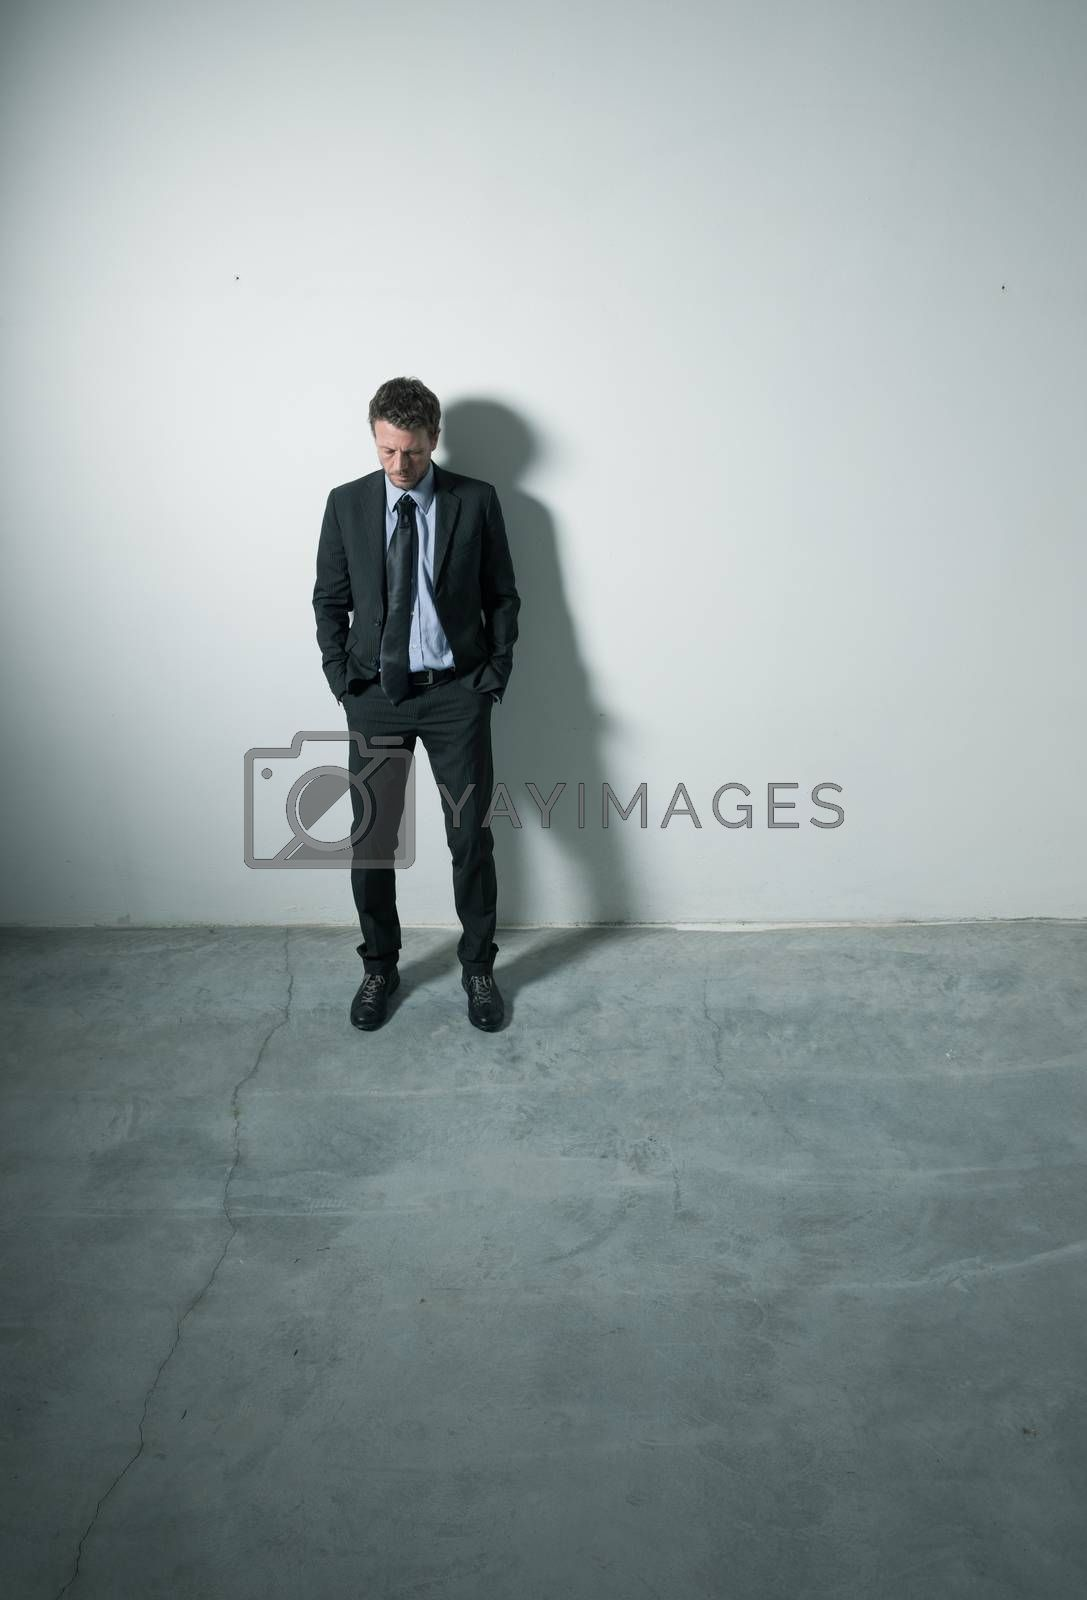 Tired pensive businessman standing with hands in pockets in an empty room with dramatic lighting.